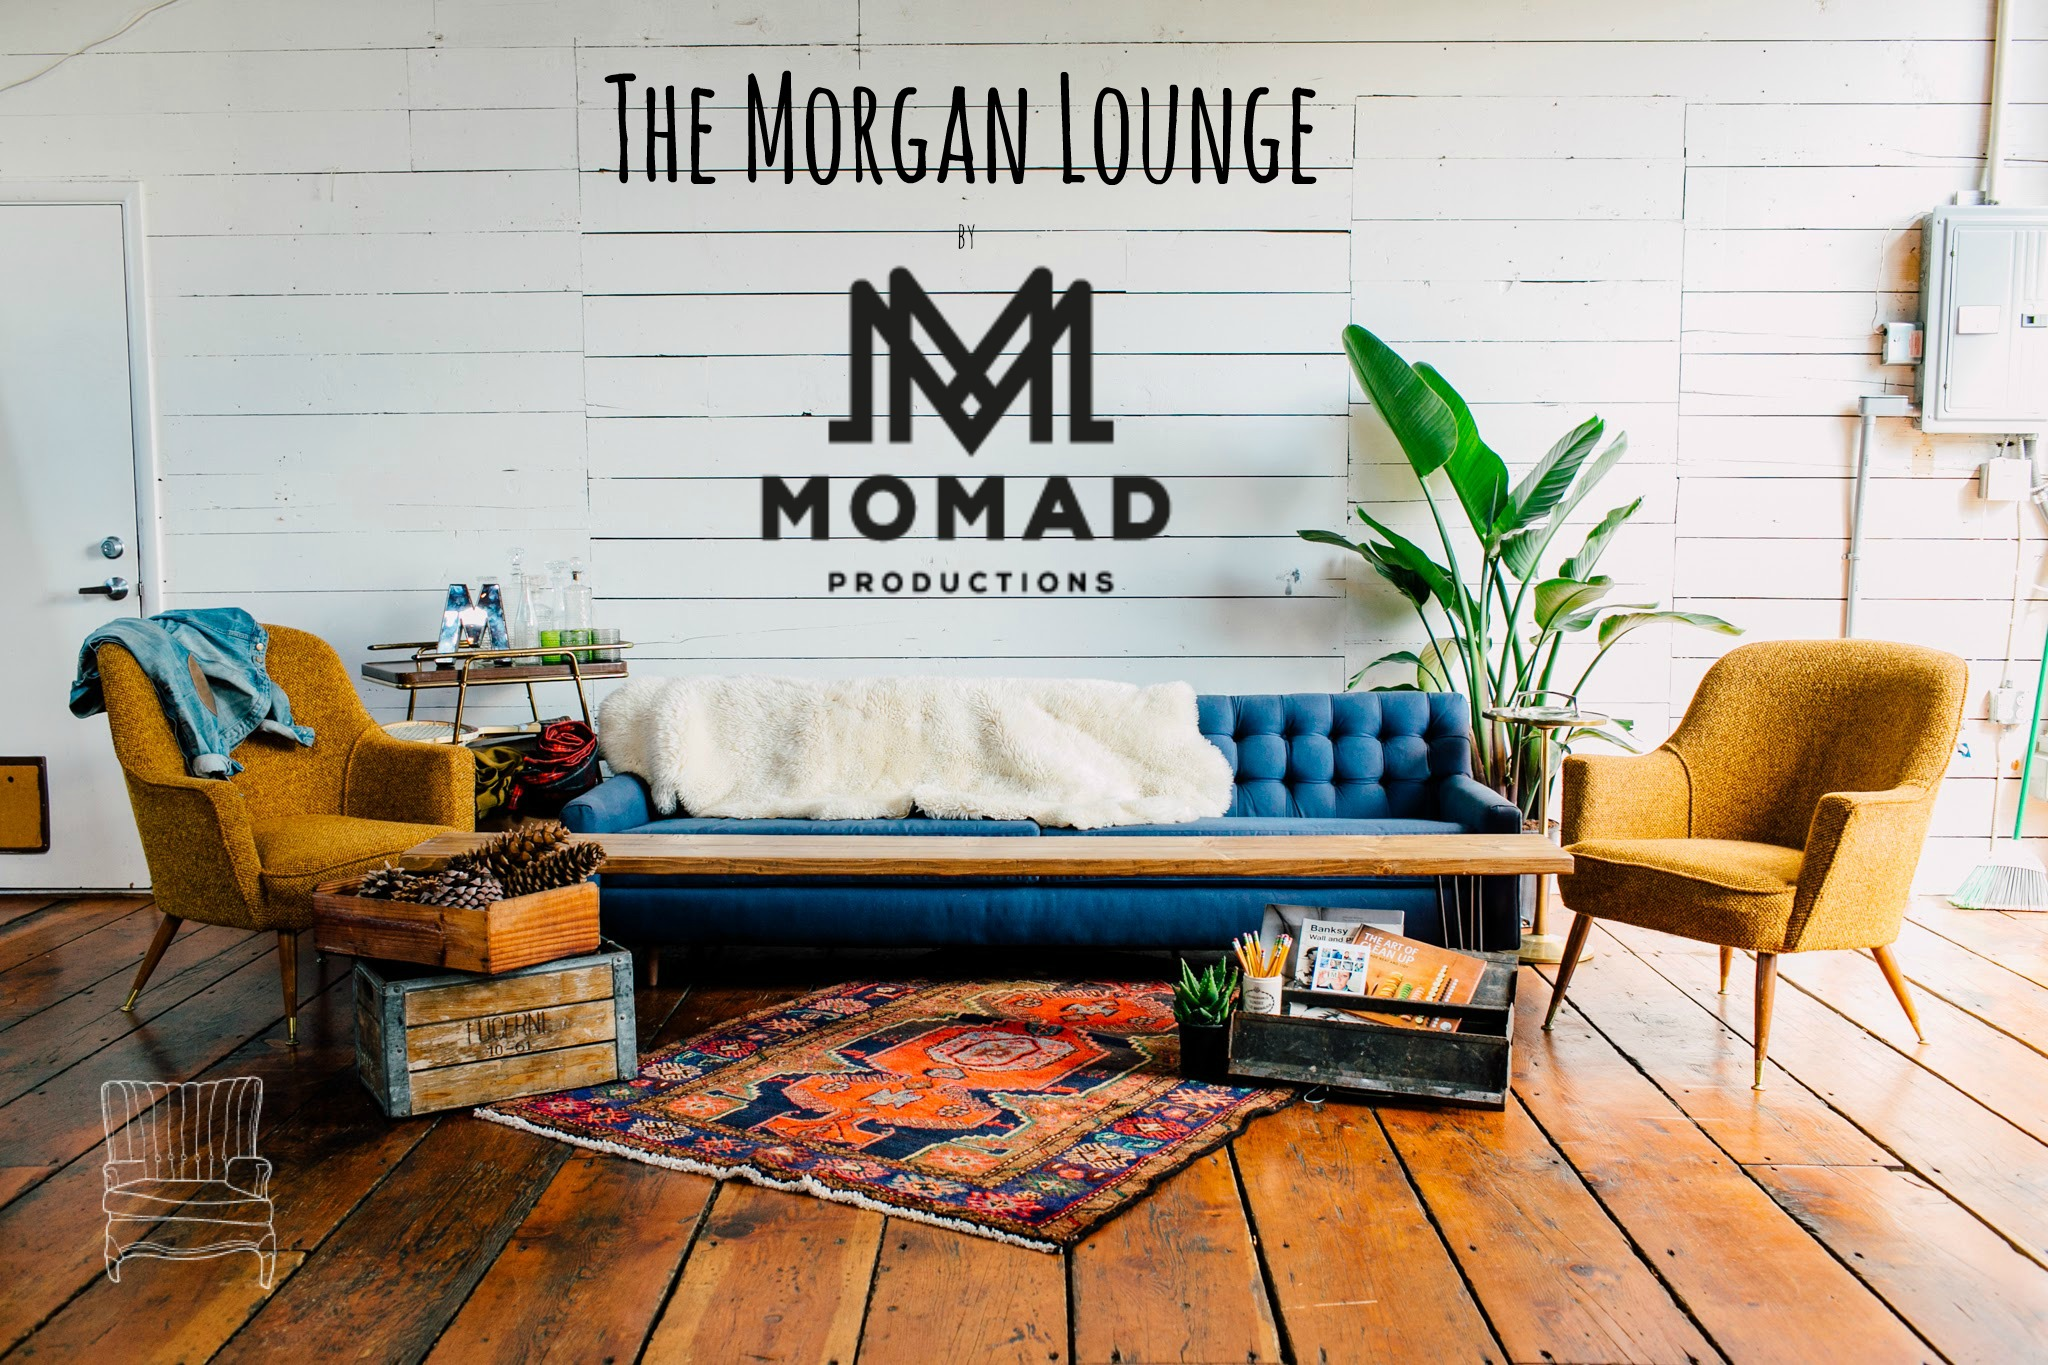 The Morgan by Momad Productions